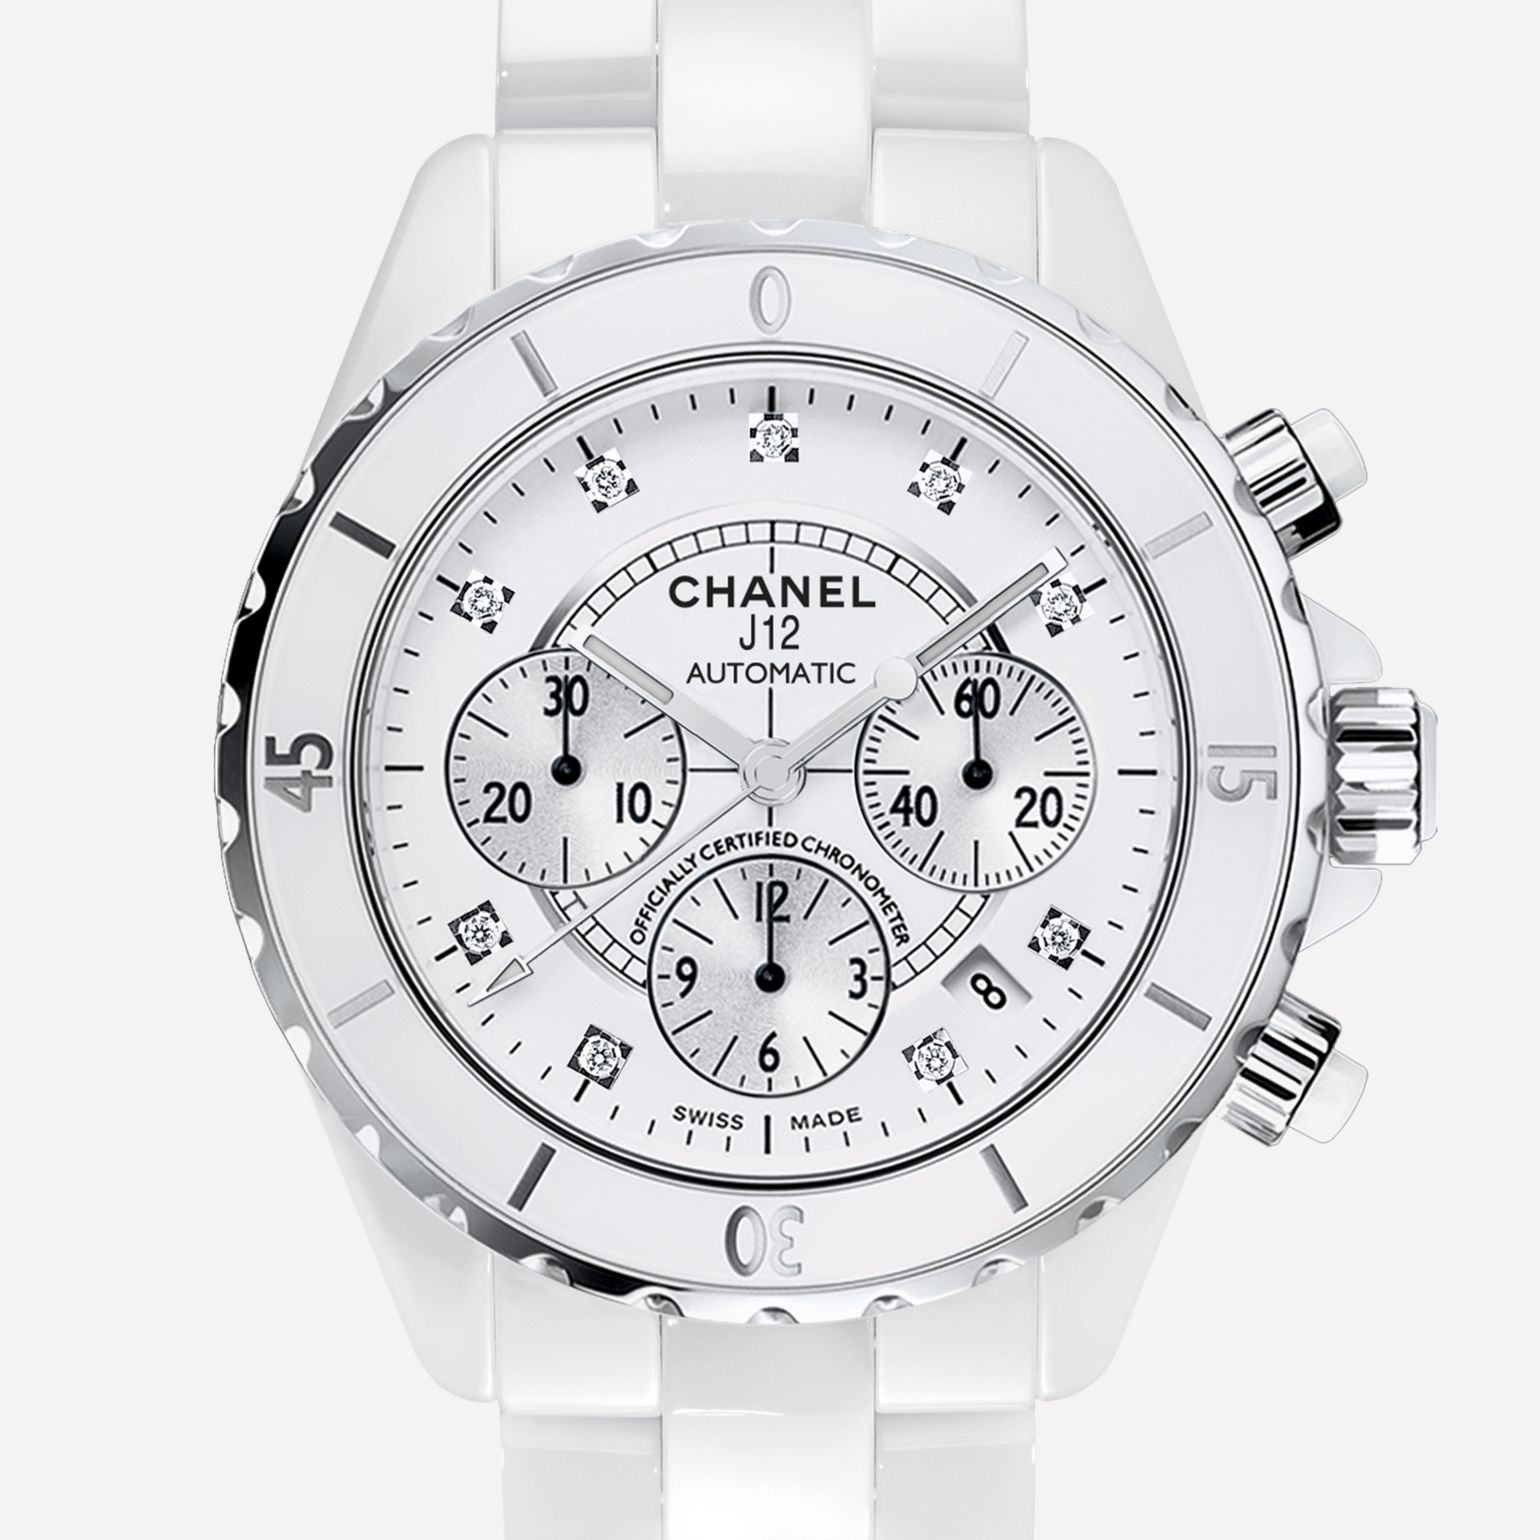 J12 CHRONOGRAPH White highly resistant ceramic and steel, diamond indicators